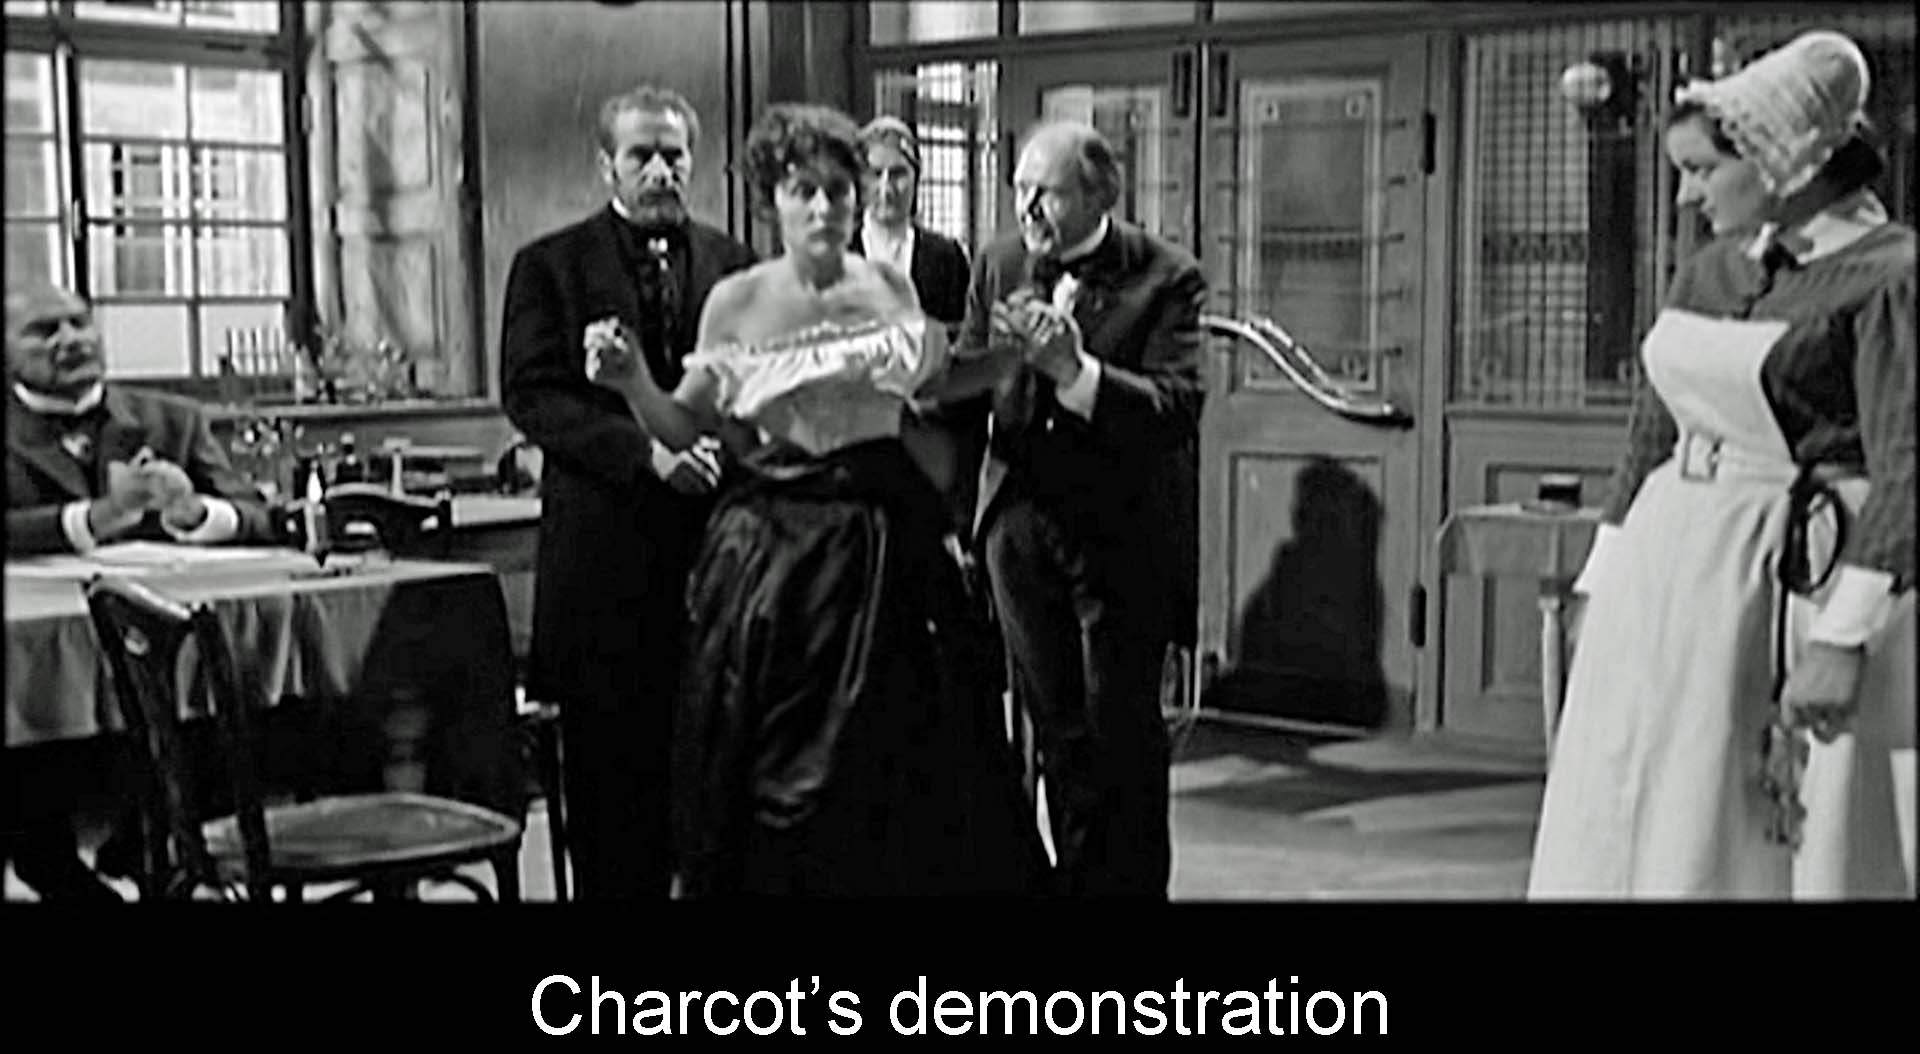 Charcot's demonstration